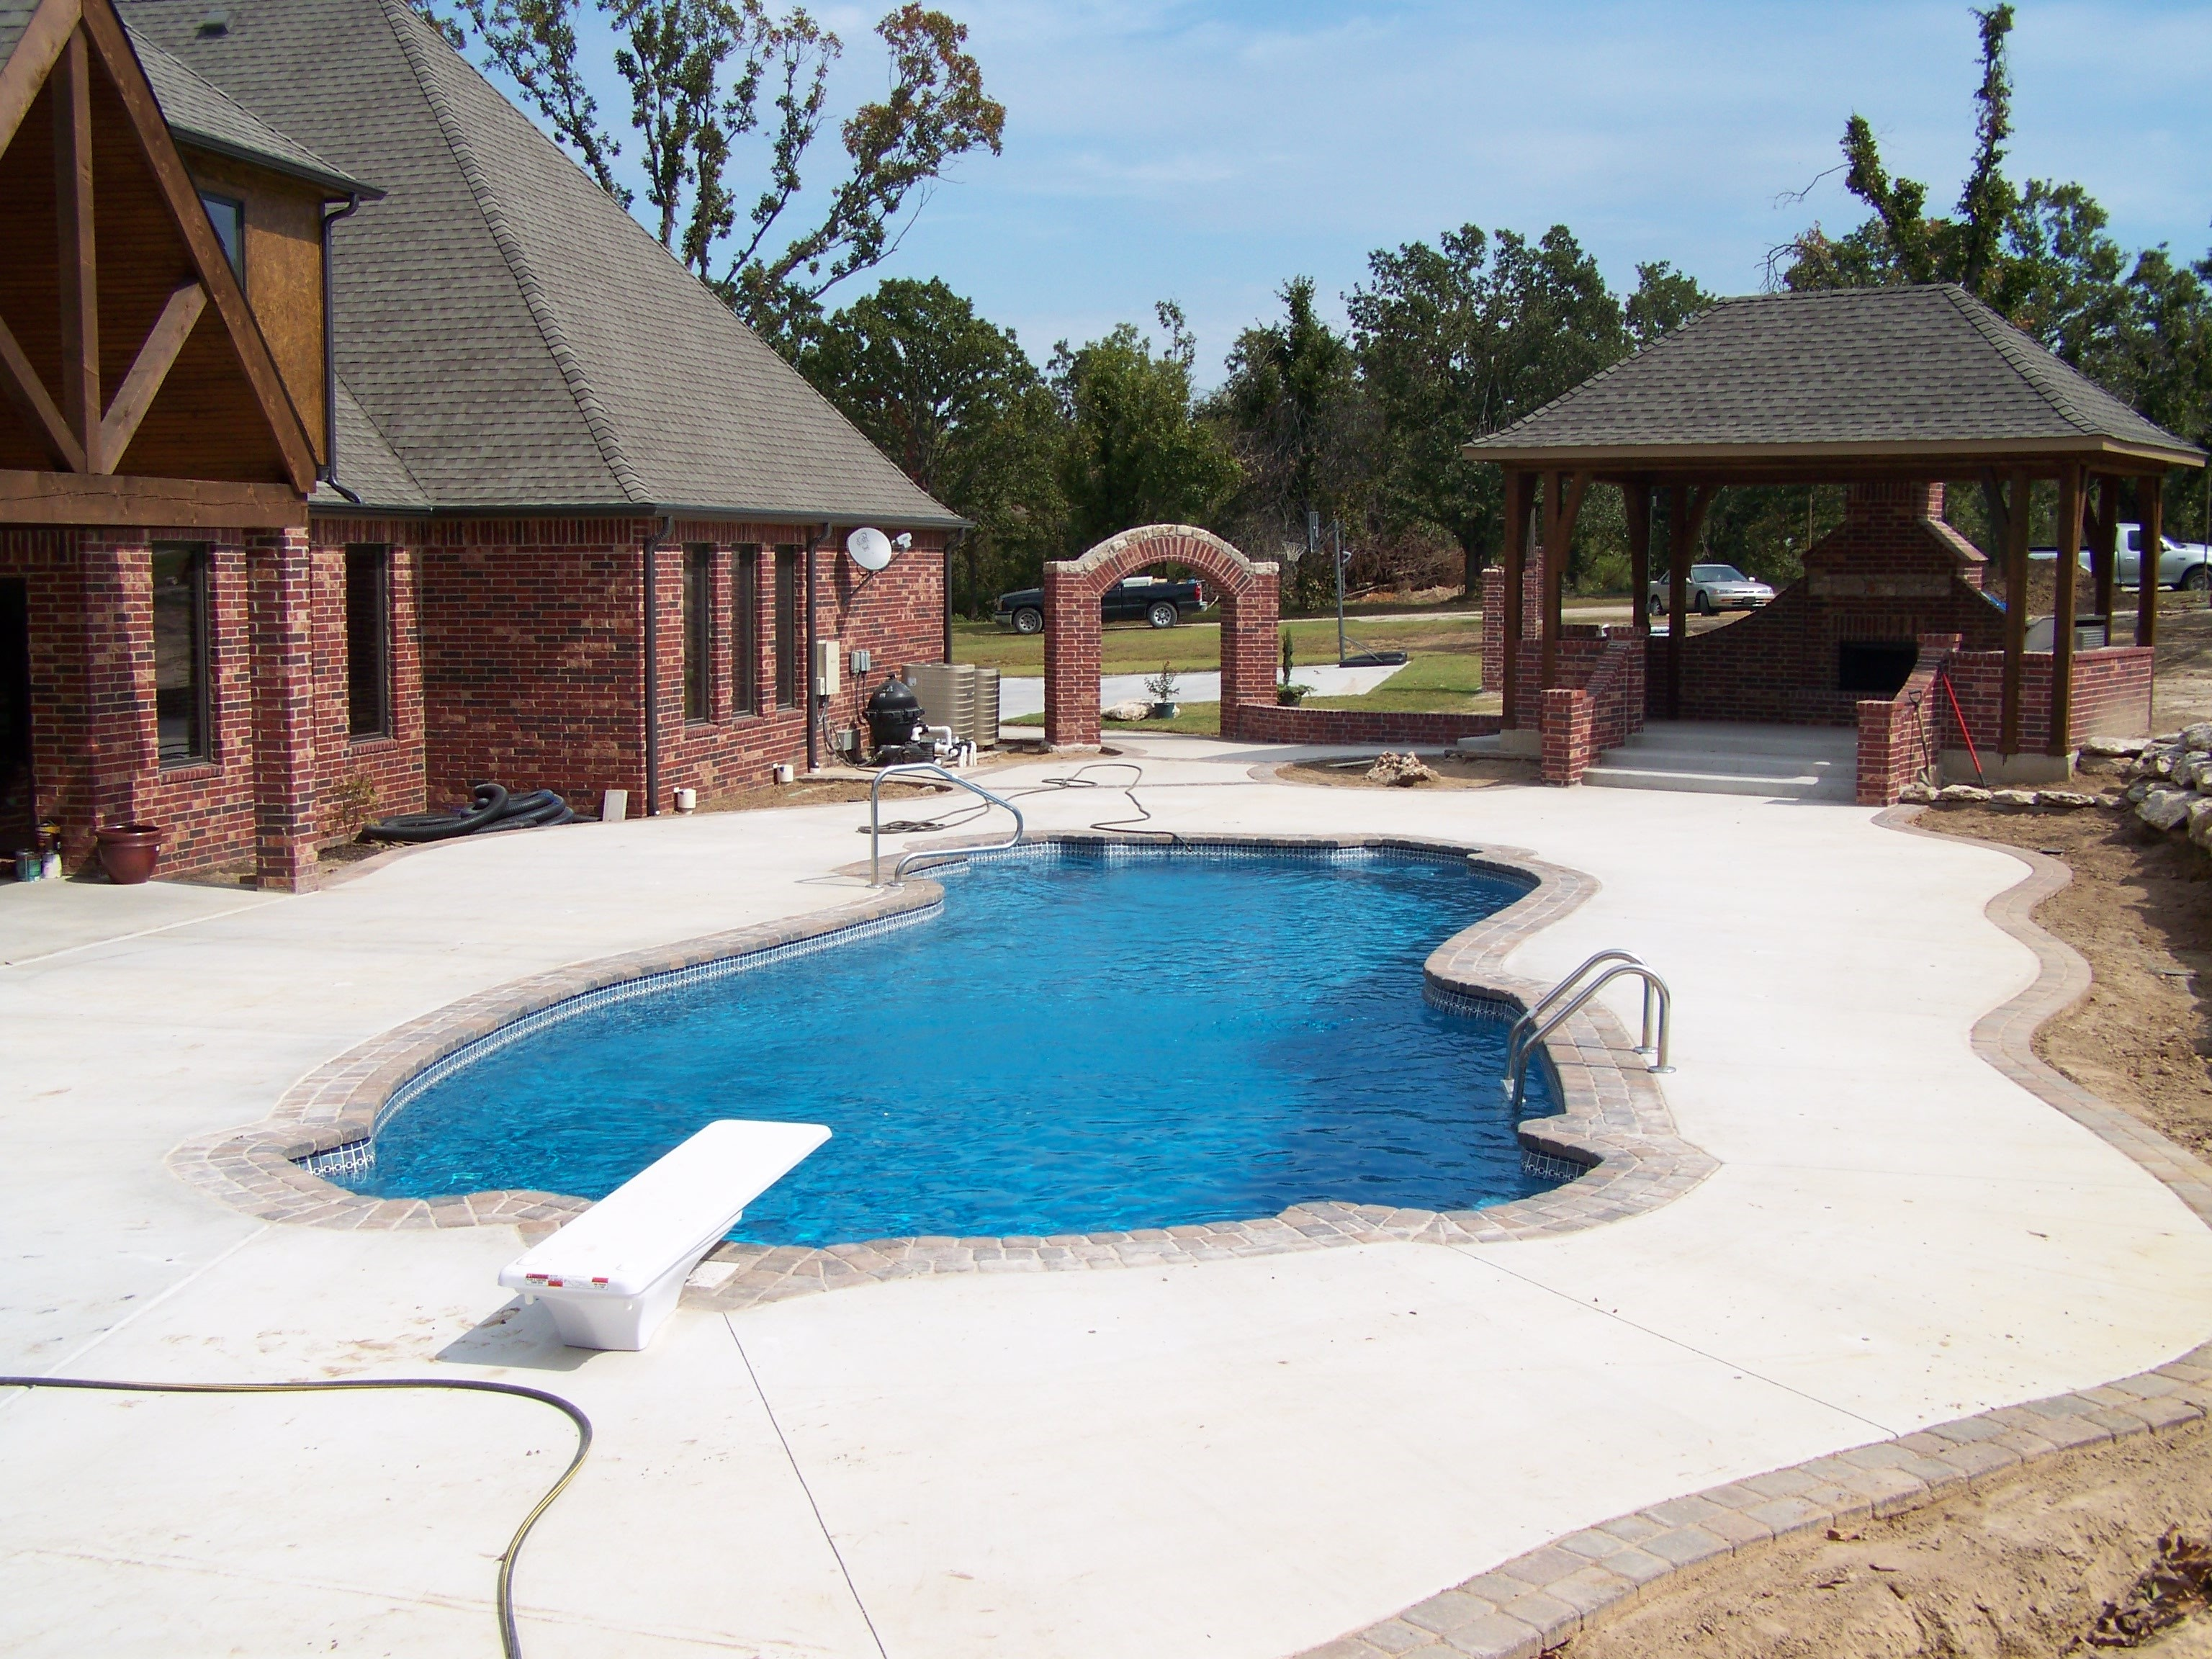 Coweta Pool And Fireplace Part - 29: Fiberglass Pool With An Outdoor Kitchen - Staying Cool Playing And Cooking!